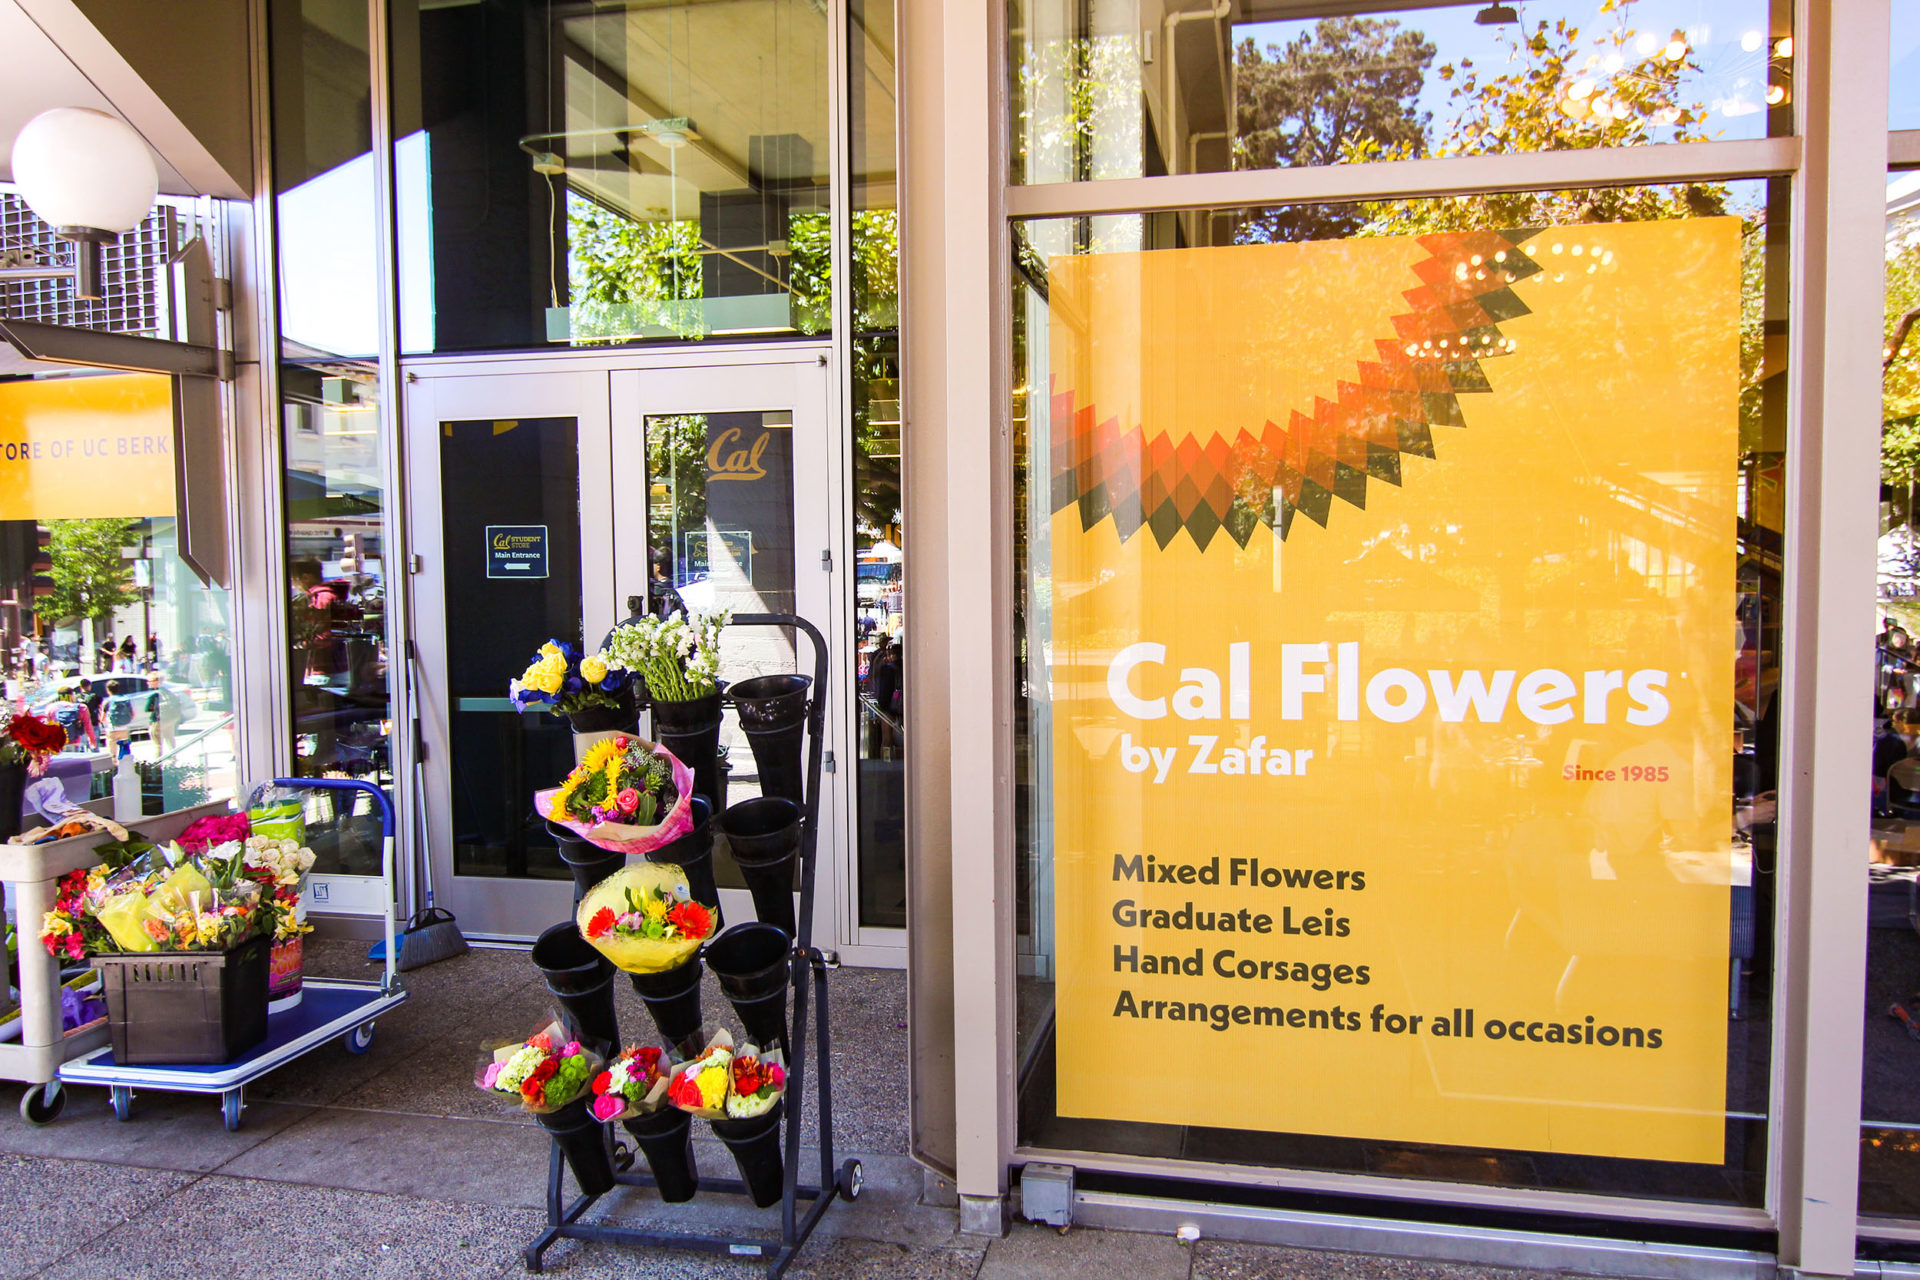 Branding for the Cal Flowers by Zafar kiosk at the ASUC Student Union